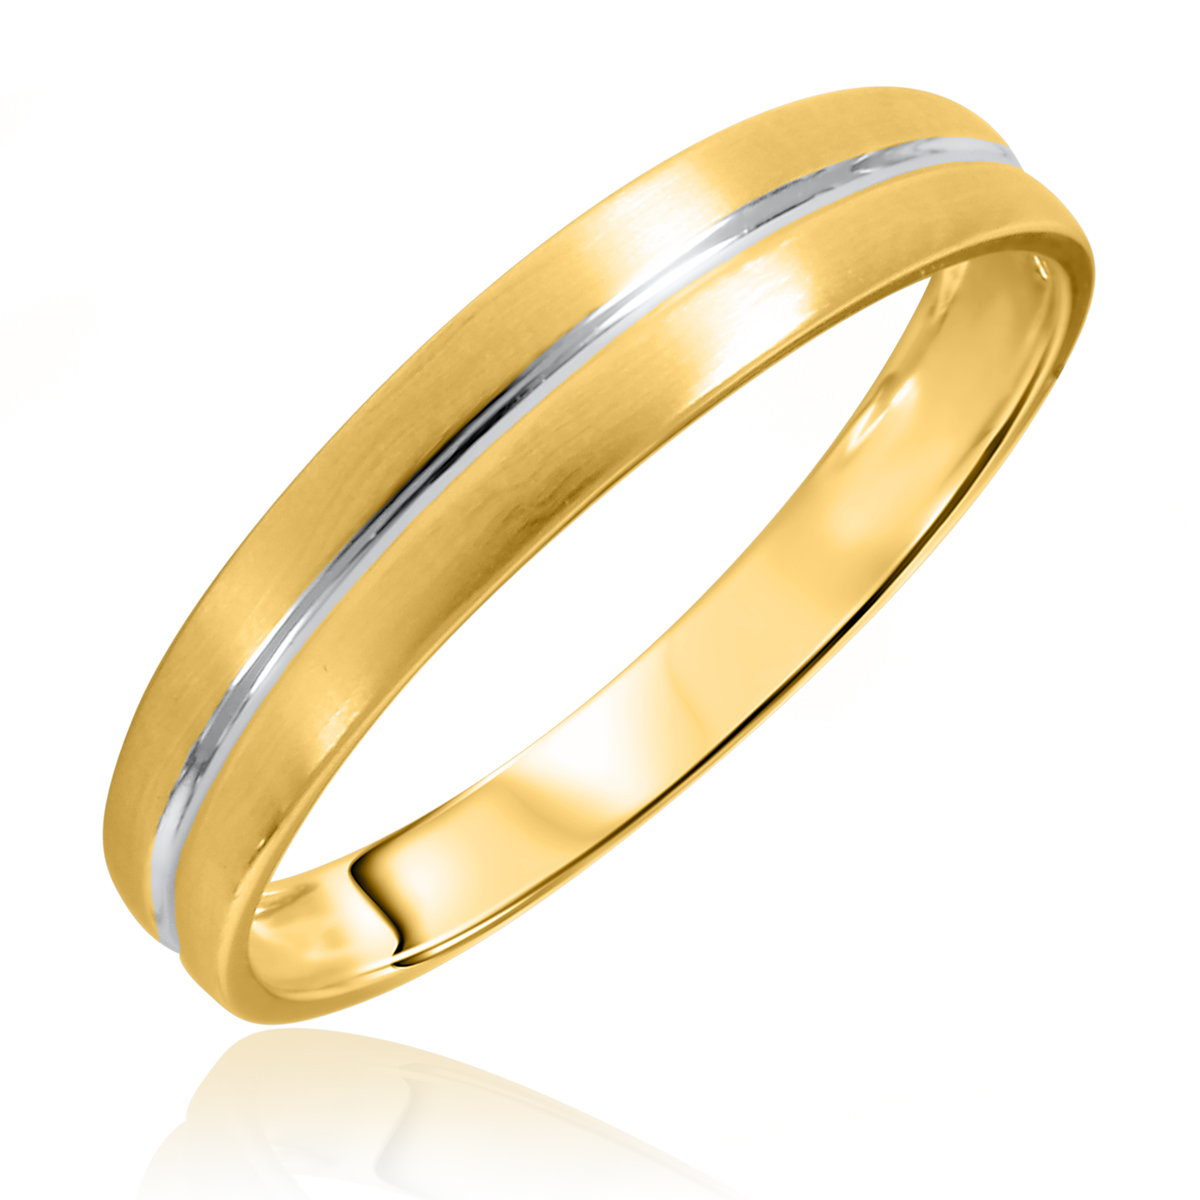 Traditional No Diamond, 4.5 millimeter, 14K Yellow Gold Traditional Mens Wedding